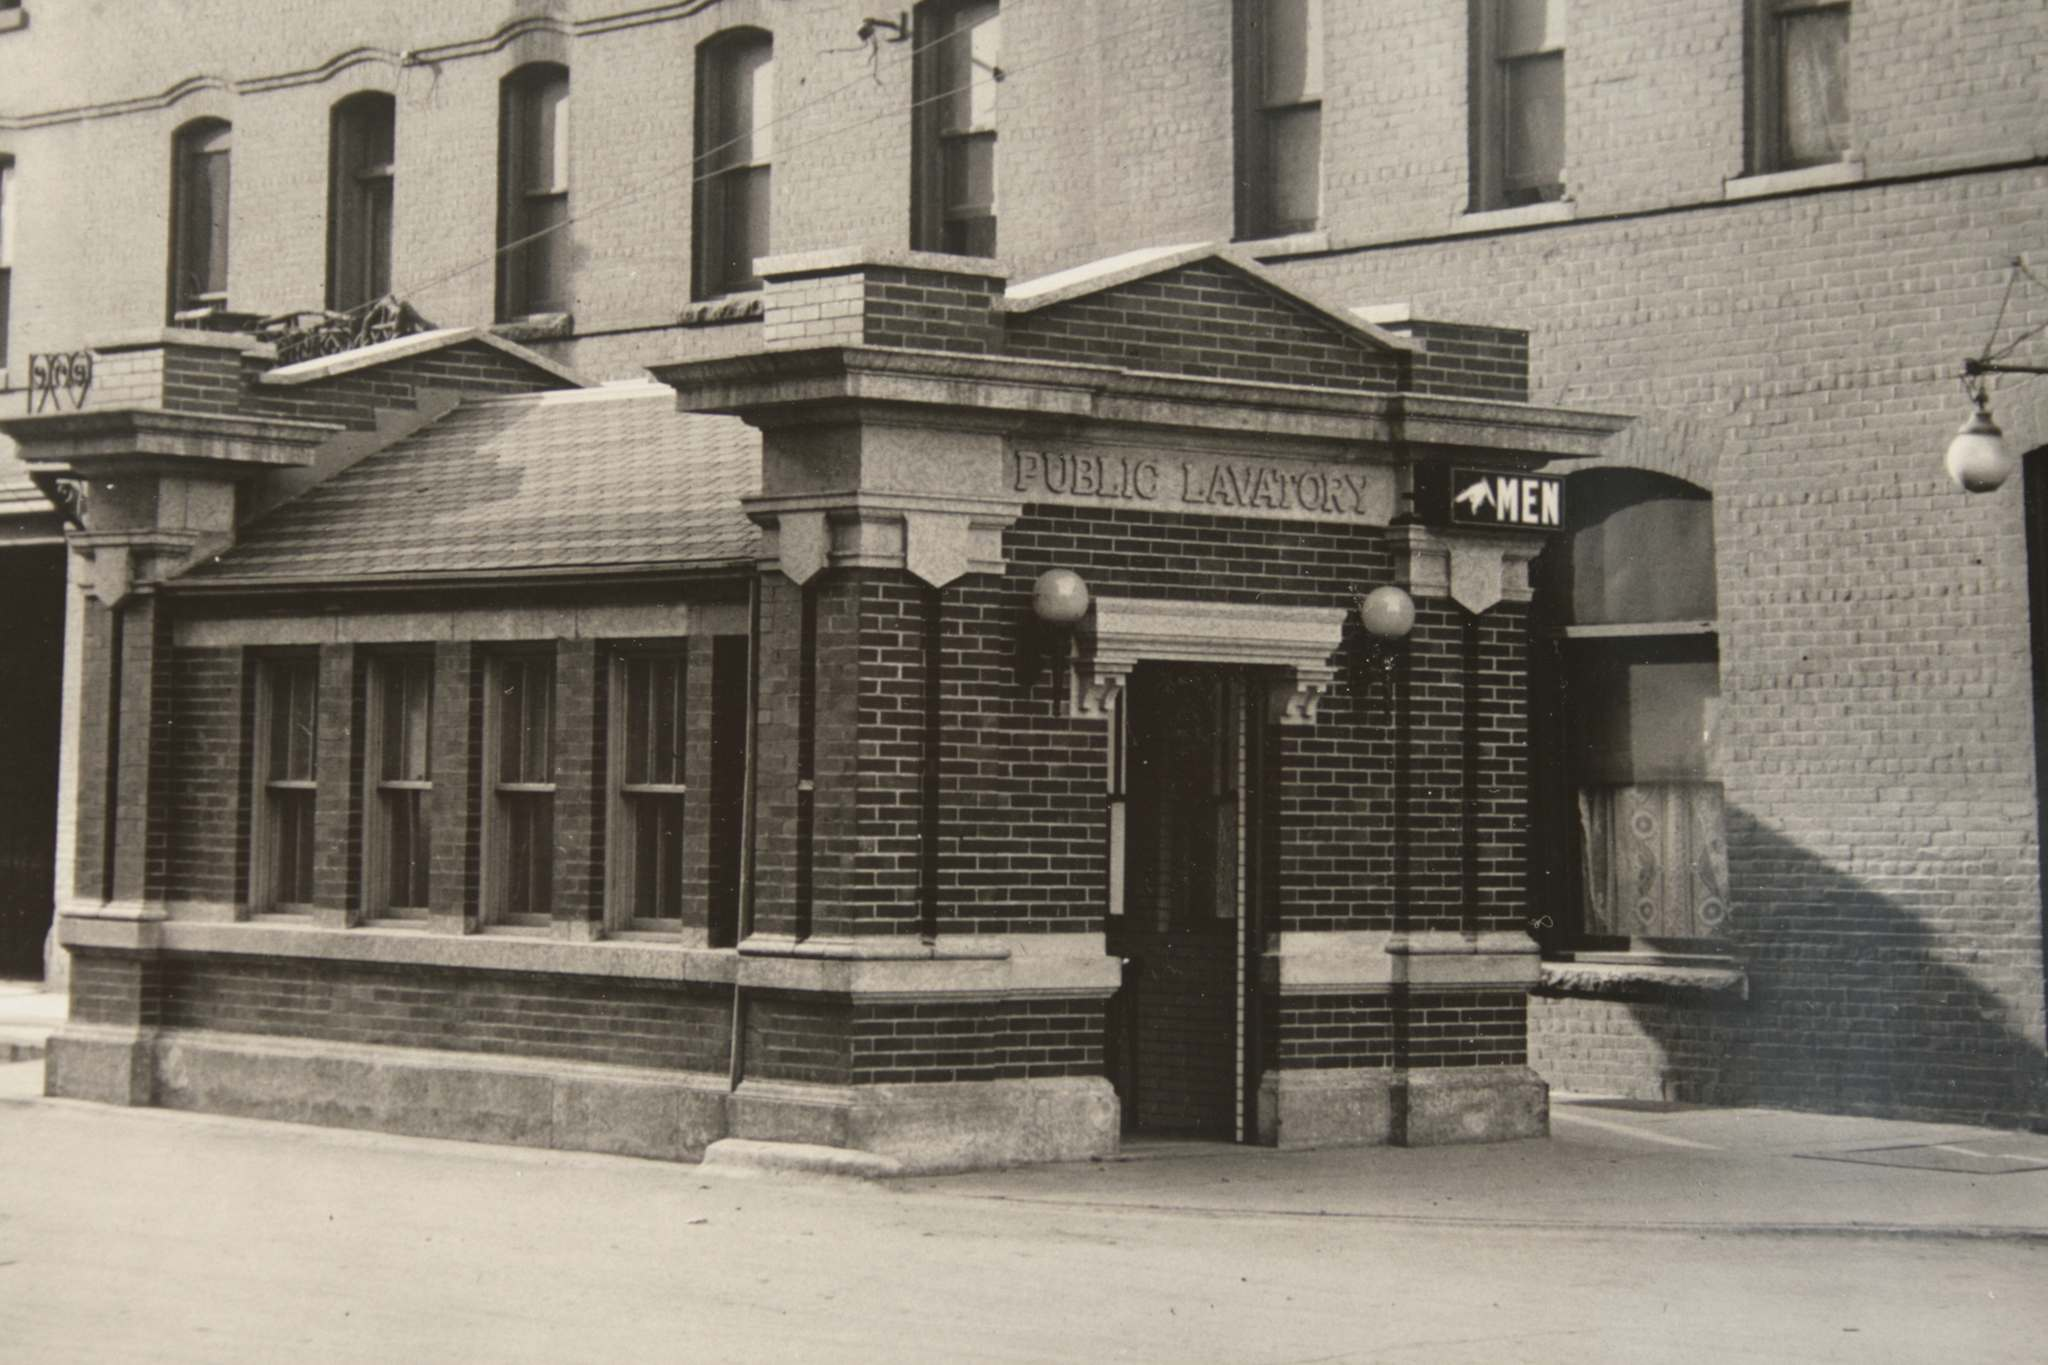 This comfort station, which stood on Logan Ave., was one of a few such public washrooms which eventually were torn down.</p>